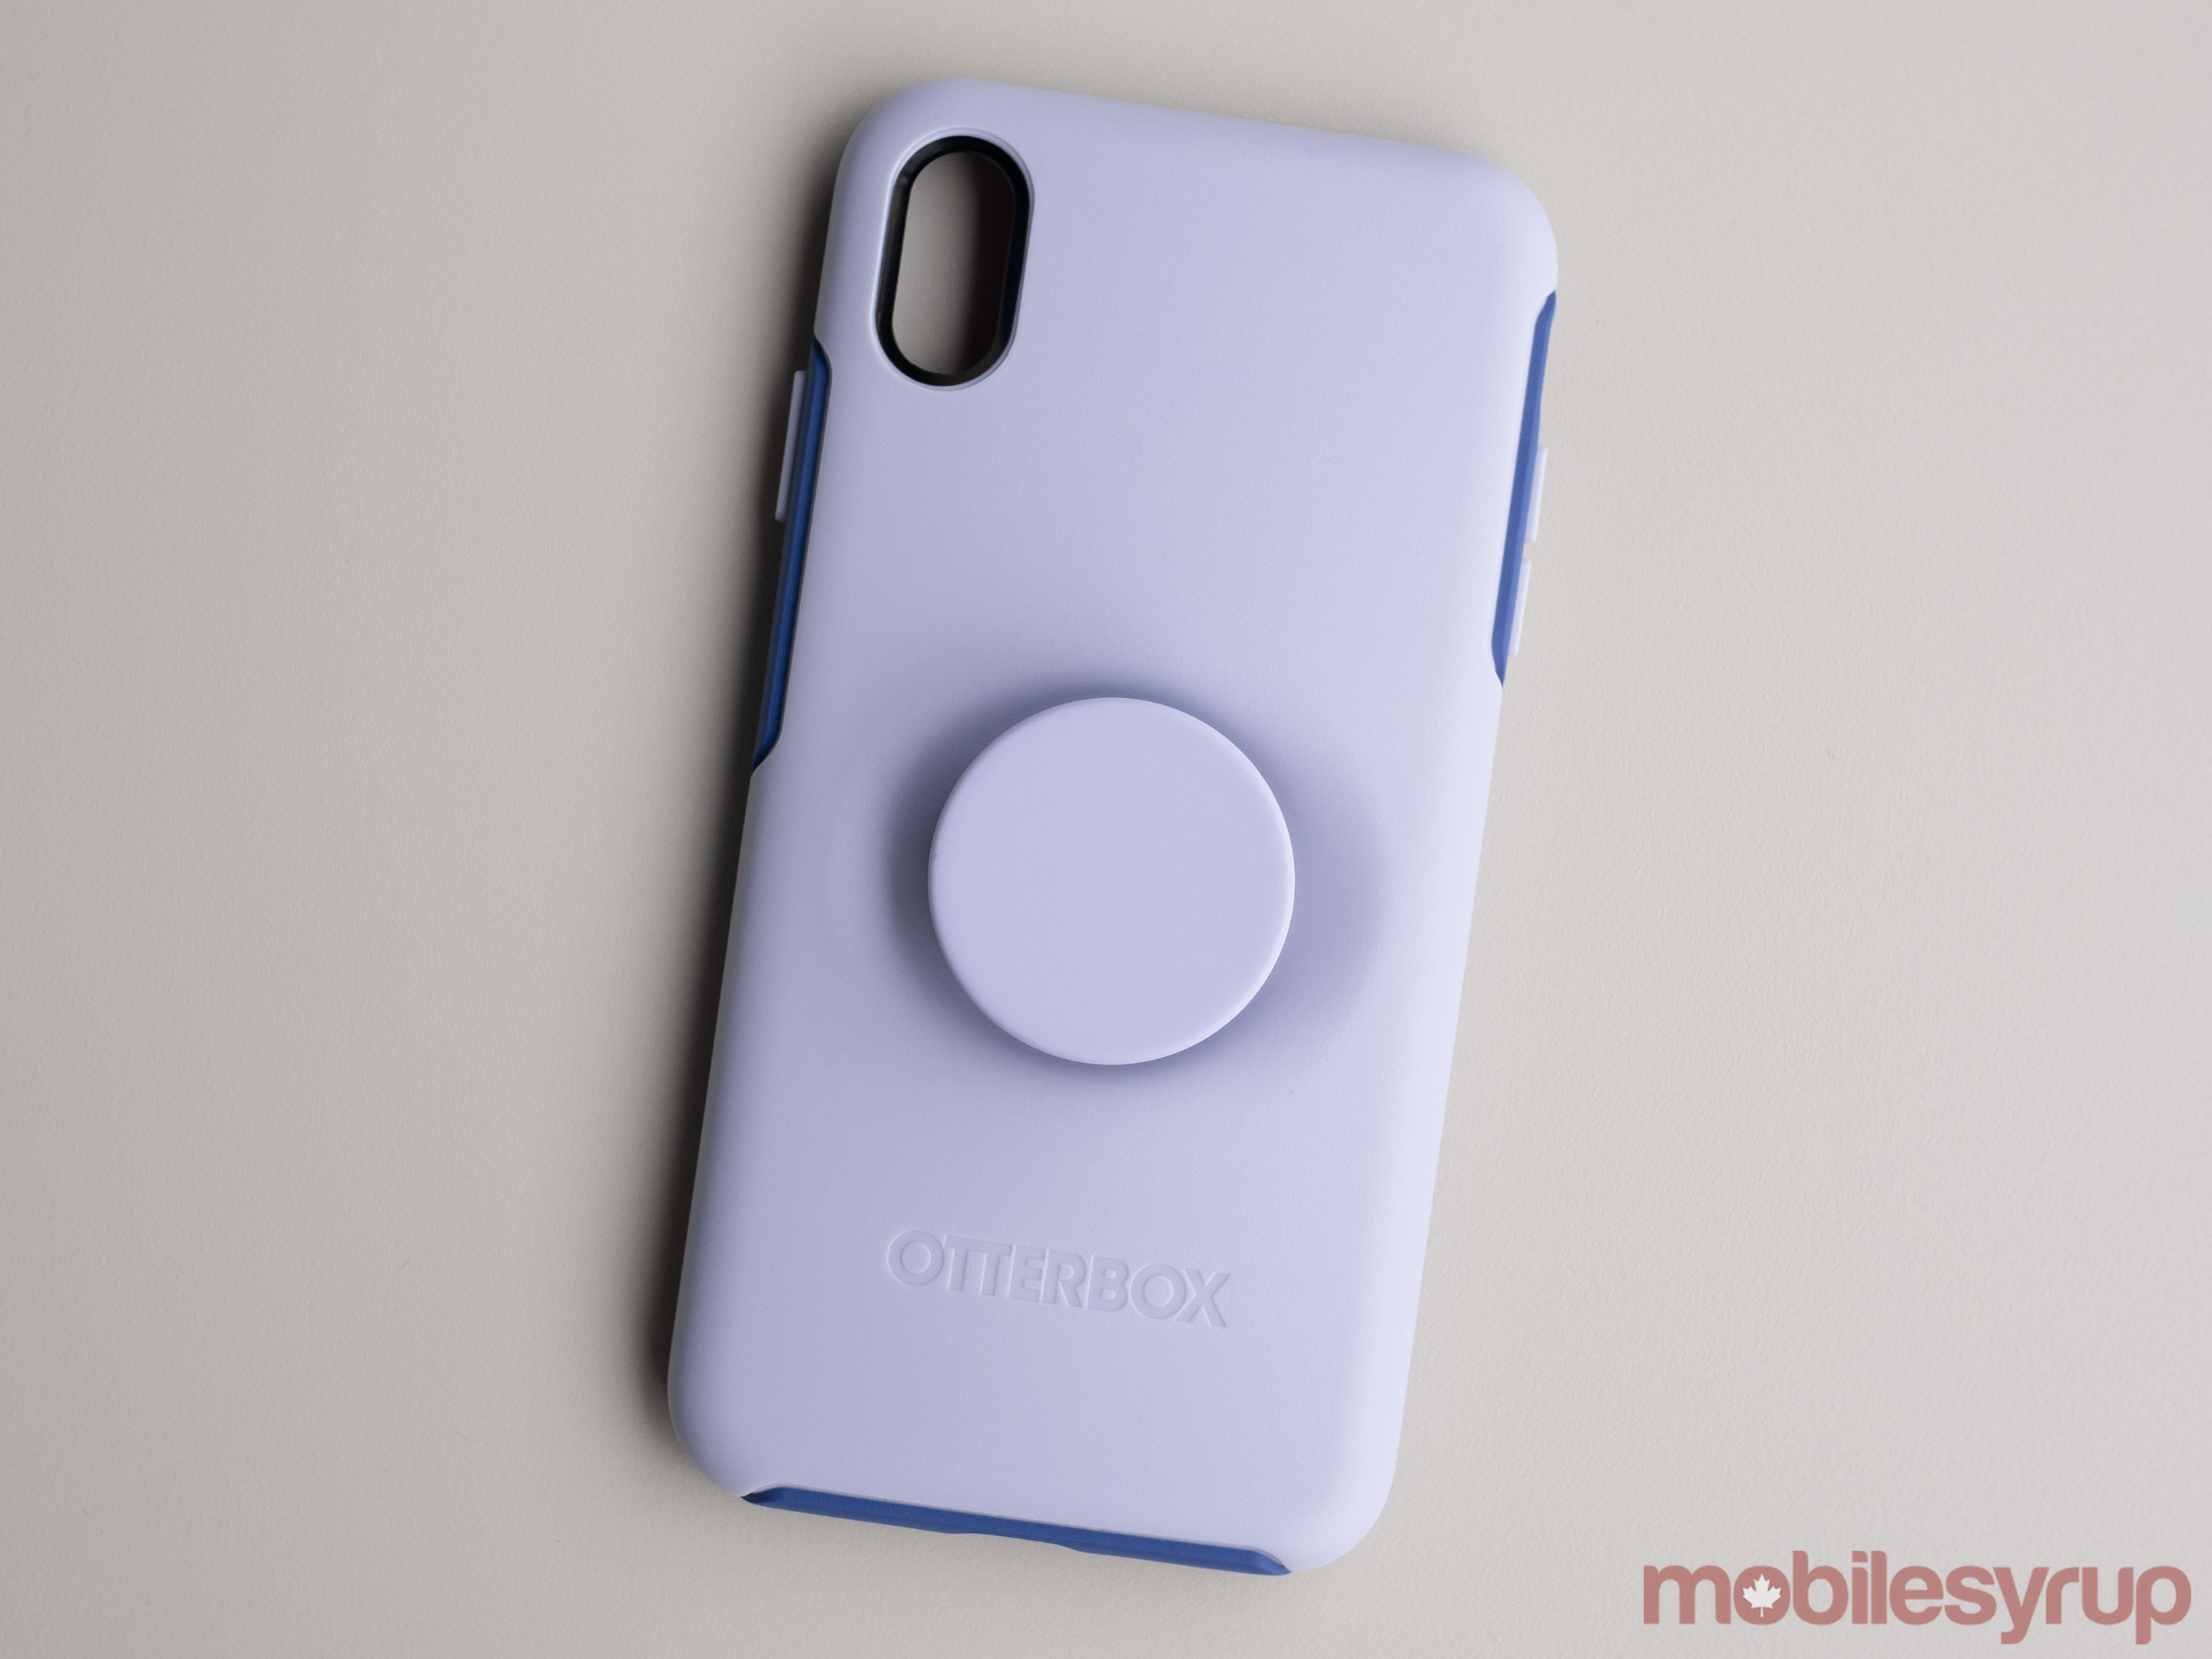 Otterbox Popsocket Puple case